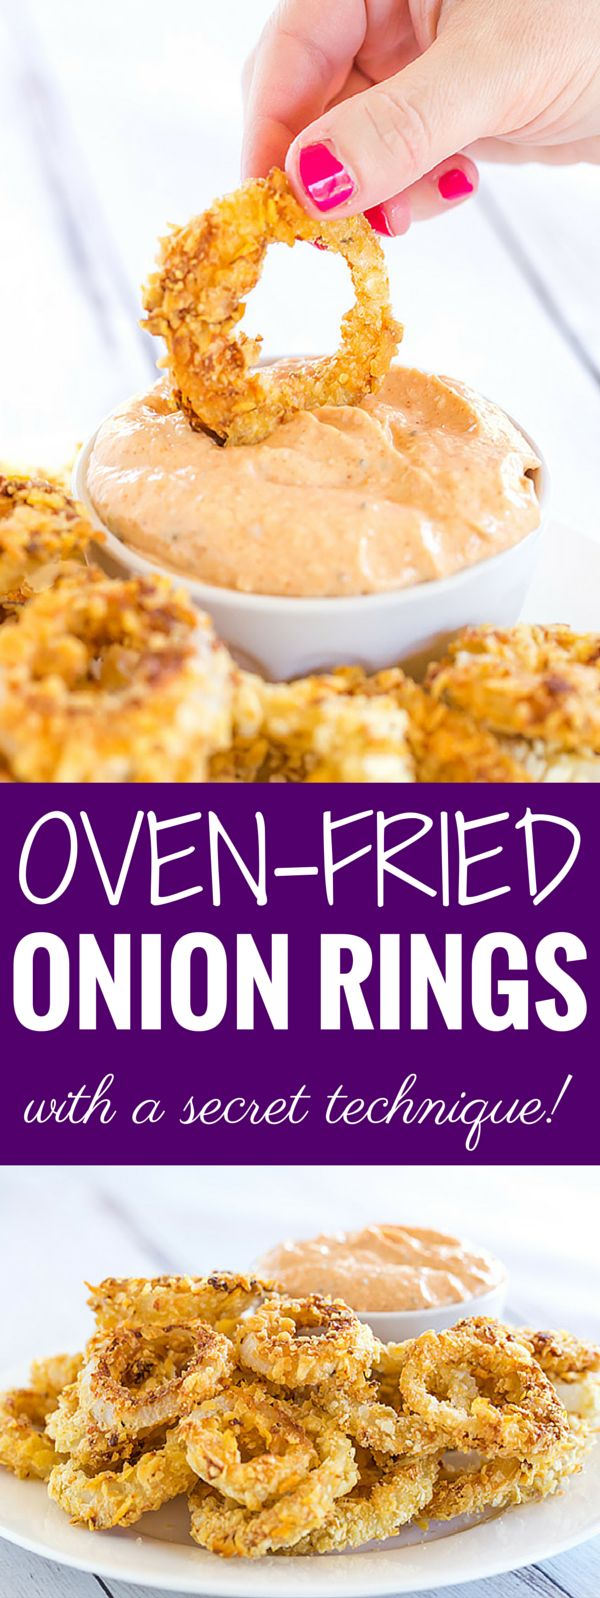 ... Onions on Pinterest | Onion rings, Baked onion rings and Crispy onions